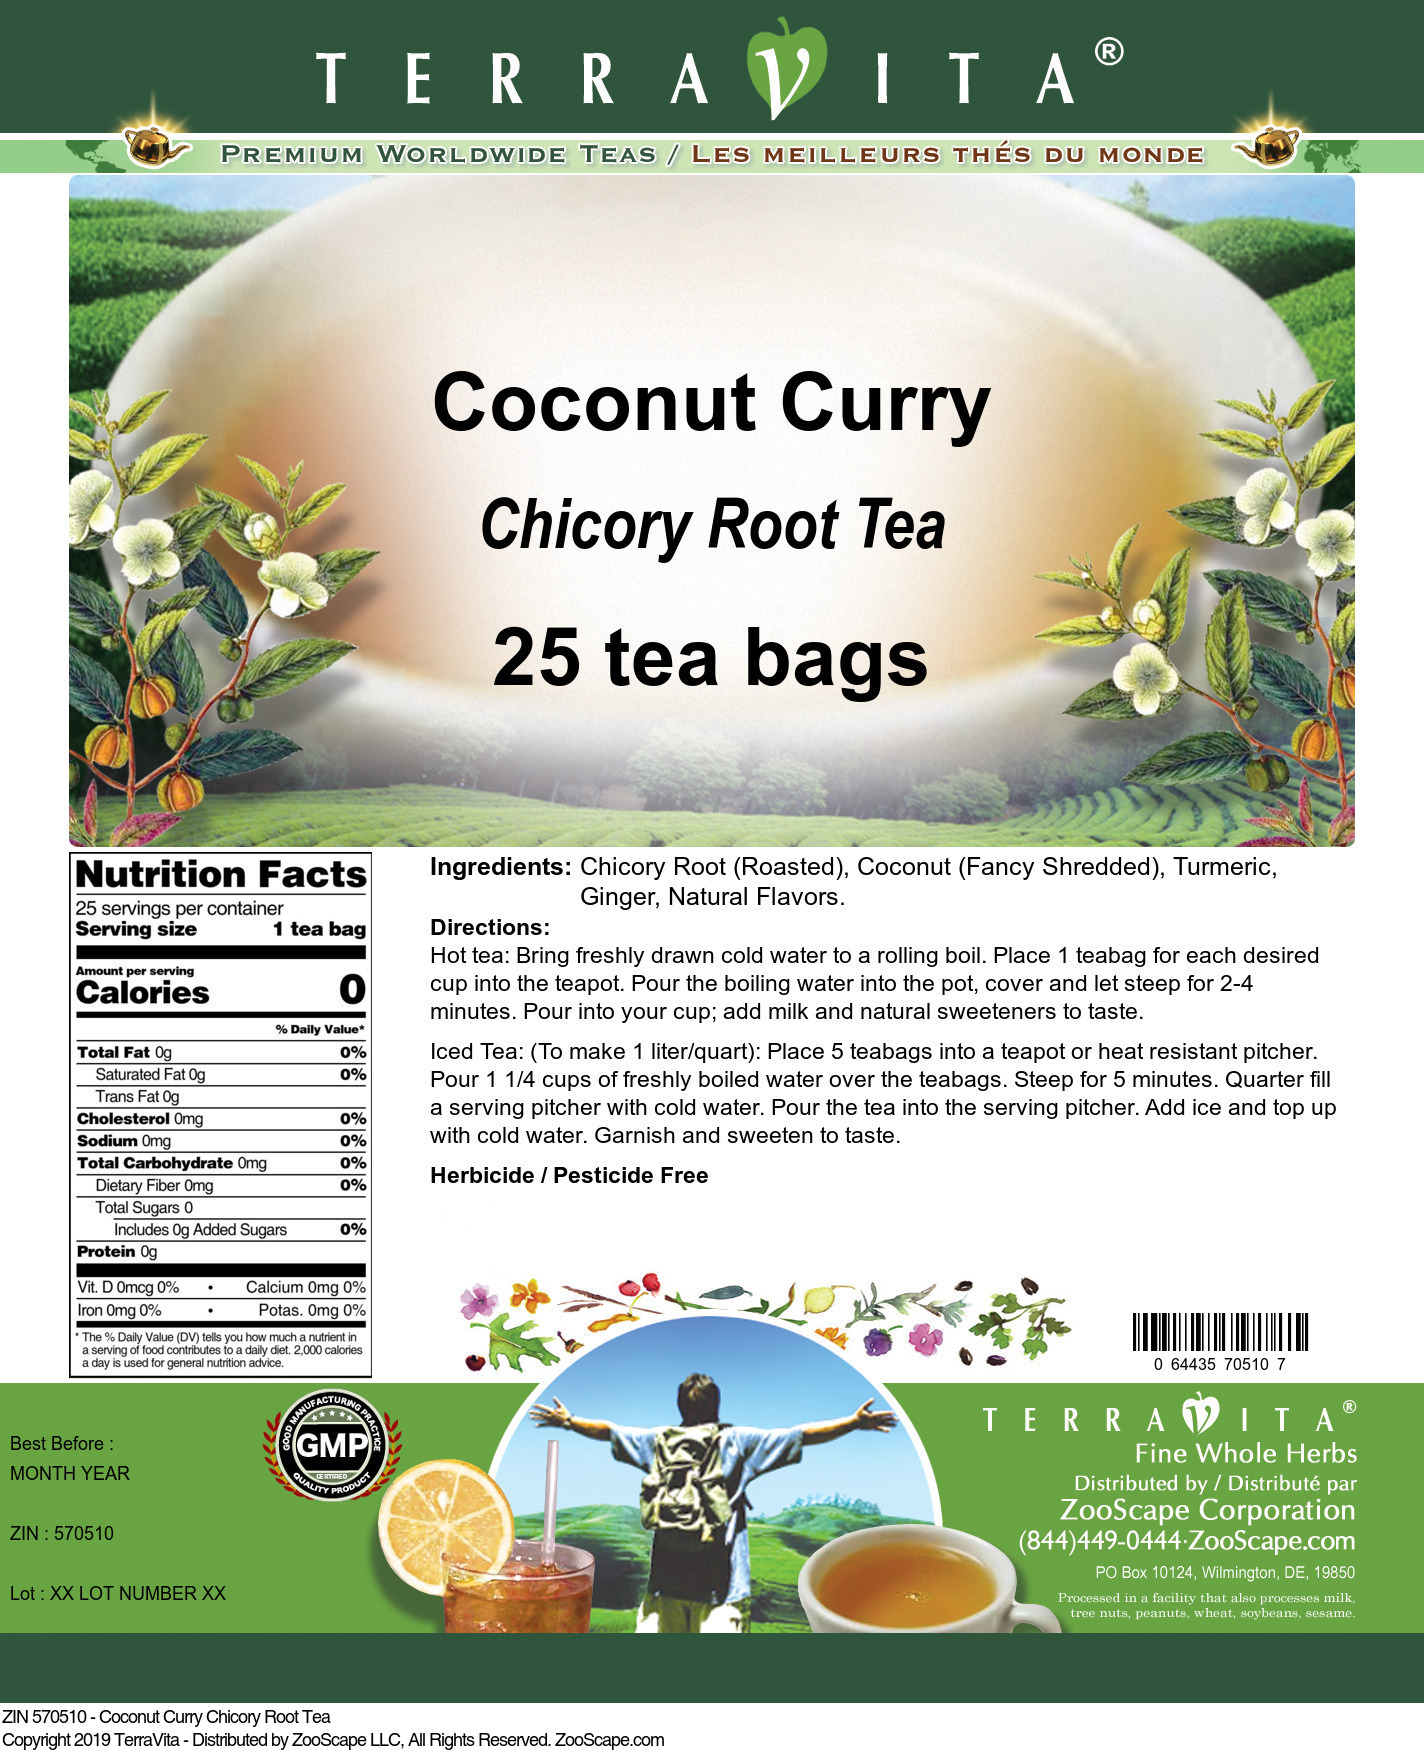 Coconut Curry Chicory Root Tea